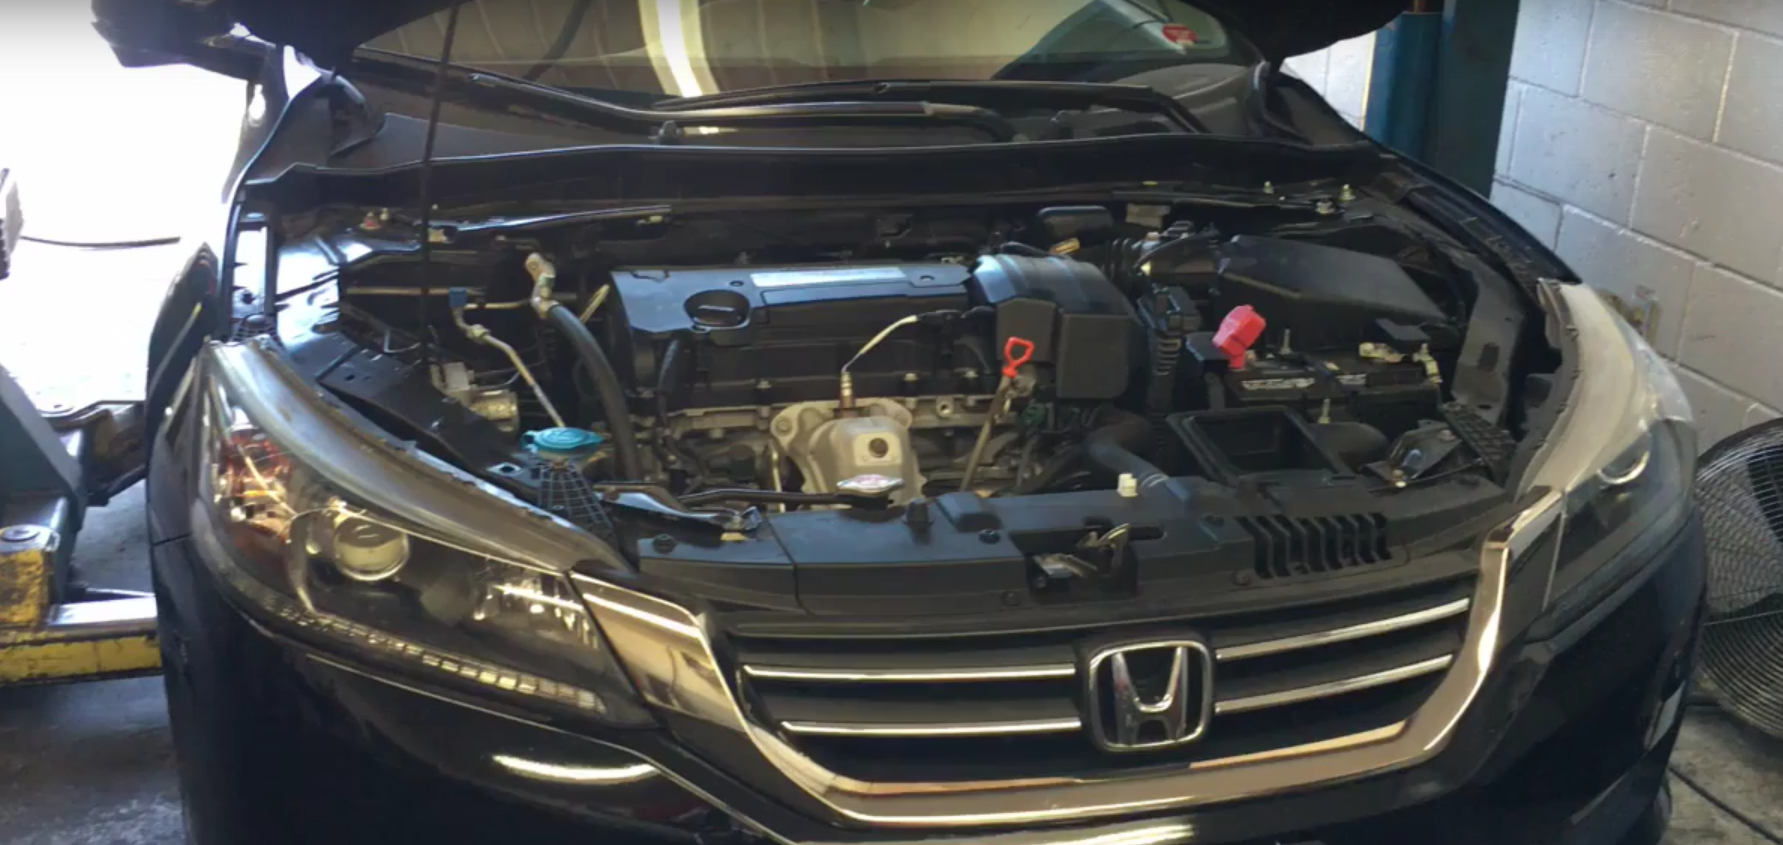 How To Replace The Starter On A 2013 Honda Accord With 24 L Engine Nissan Frontier Diagram